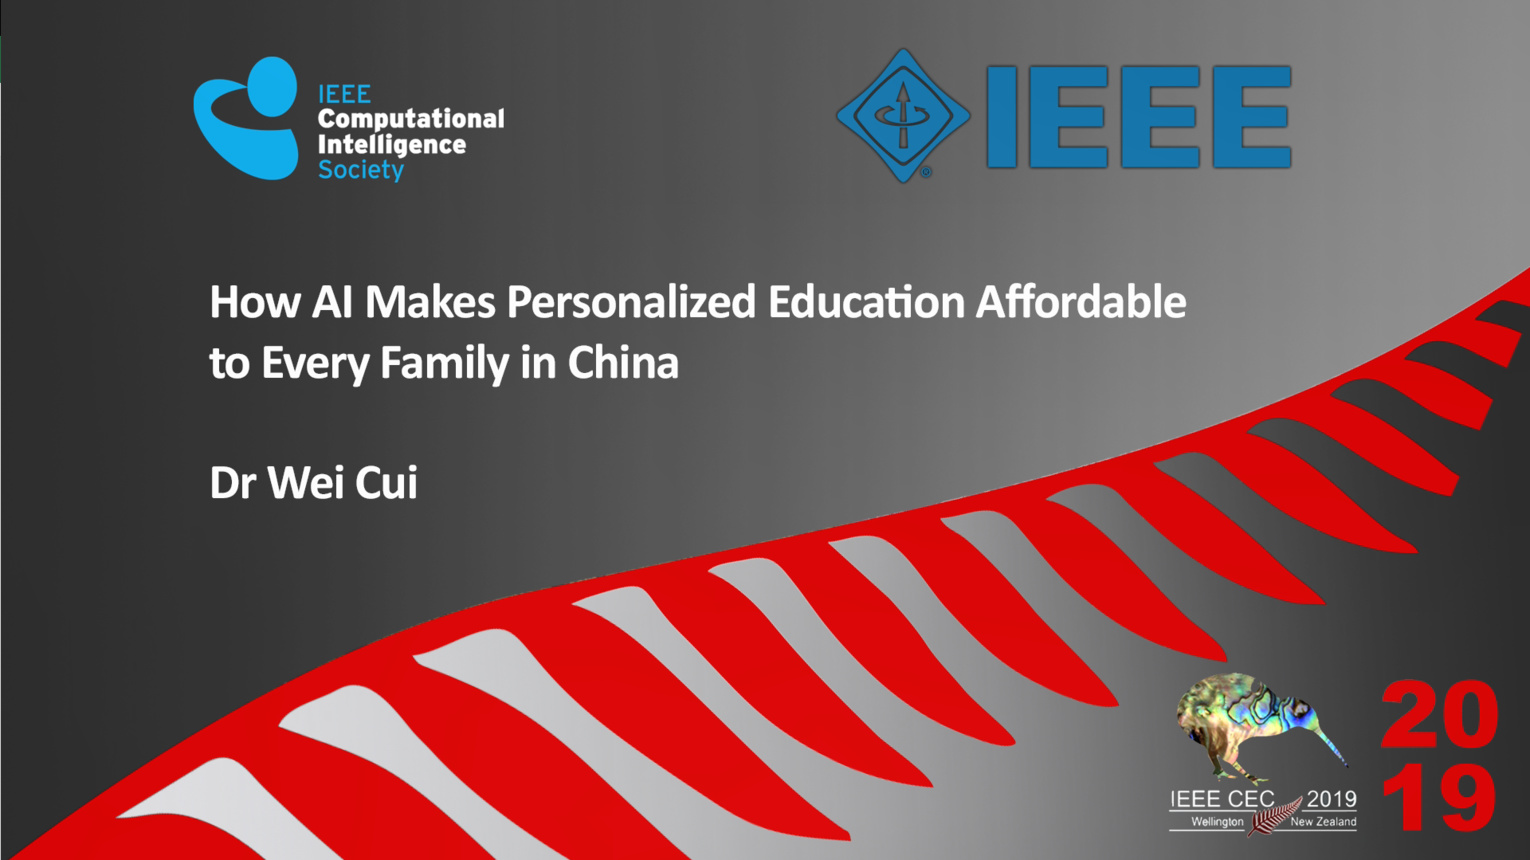 How AI Makes Personalized Education Affordable to Every Family in China